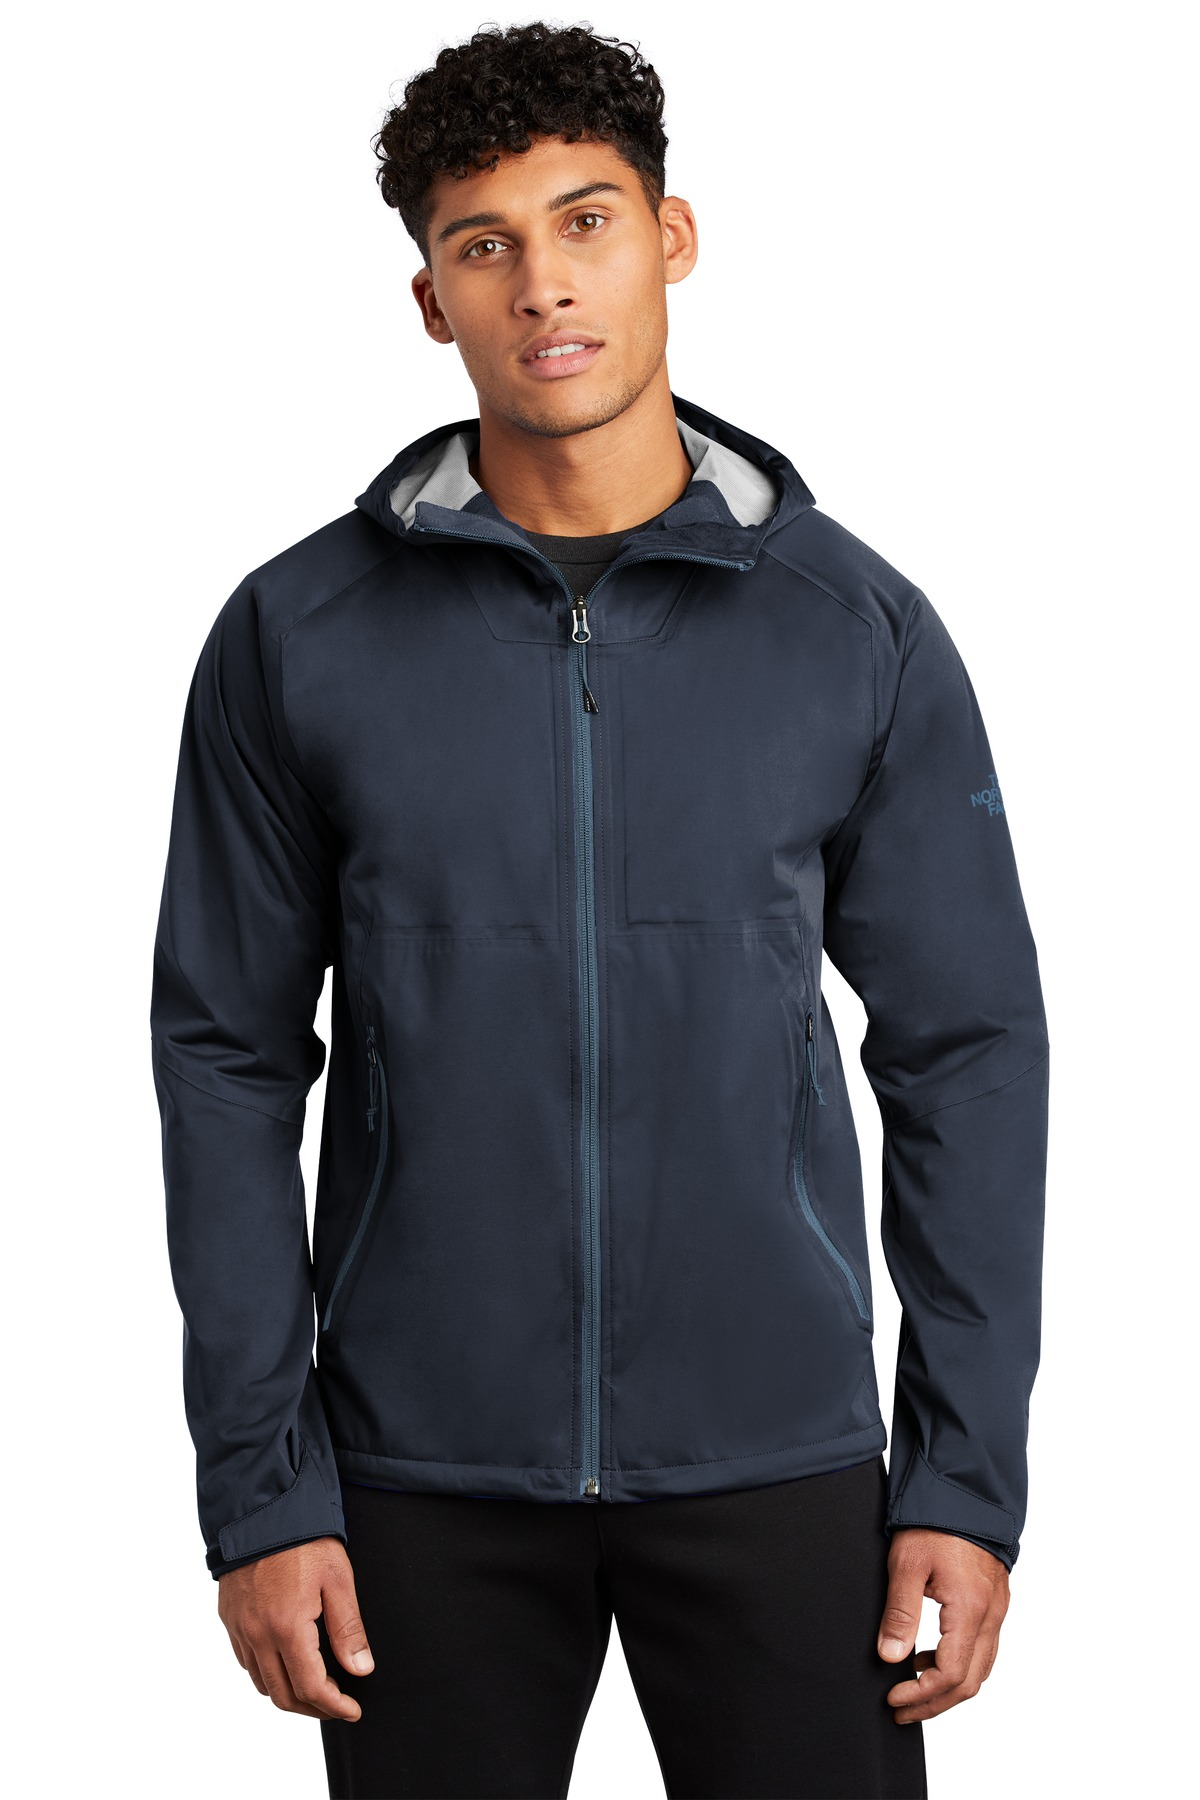 The North Face  ®  All-Weather DryVent  ™  Stretch Jacket NF0A47FG - Urban Navy